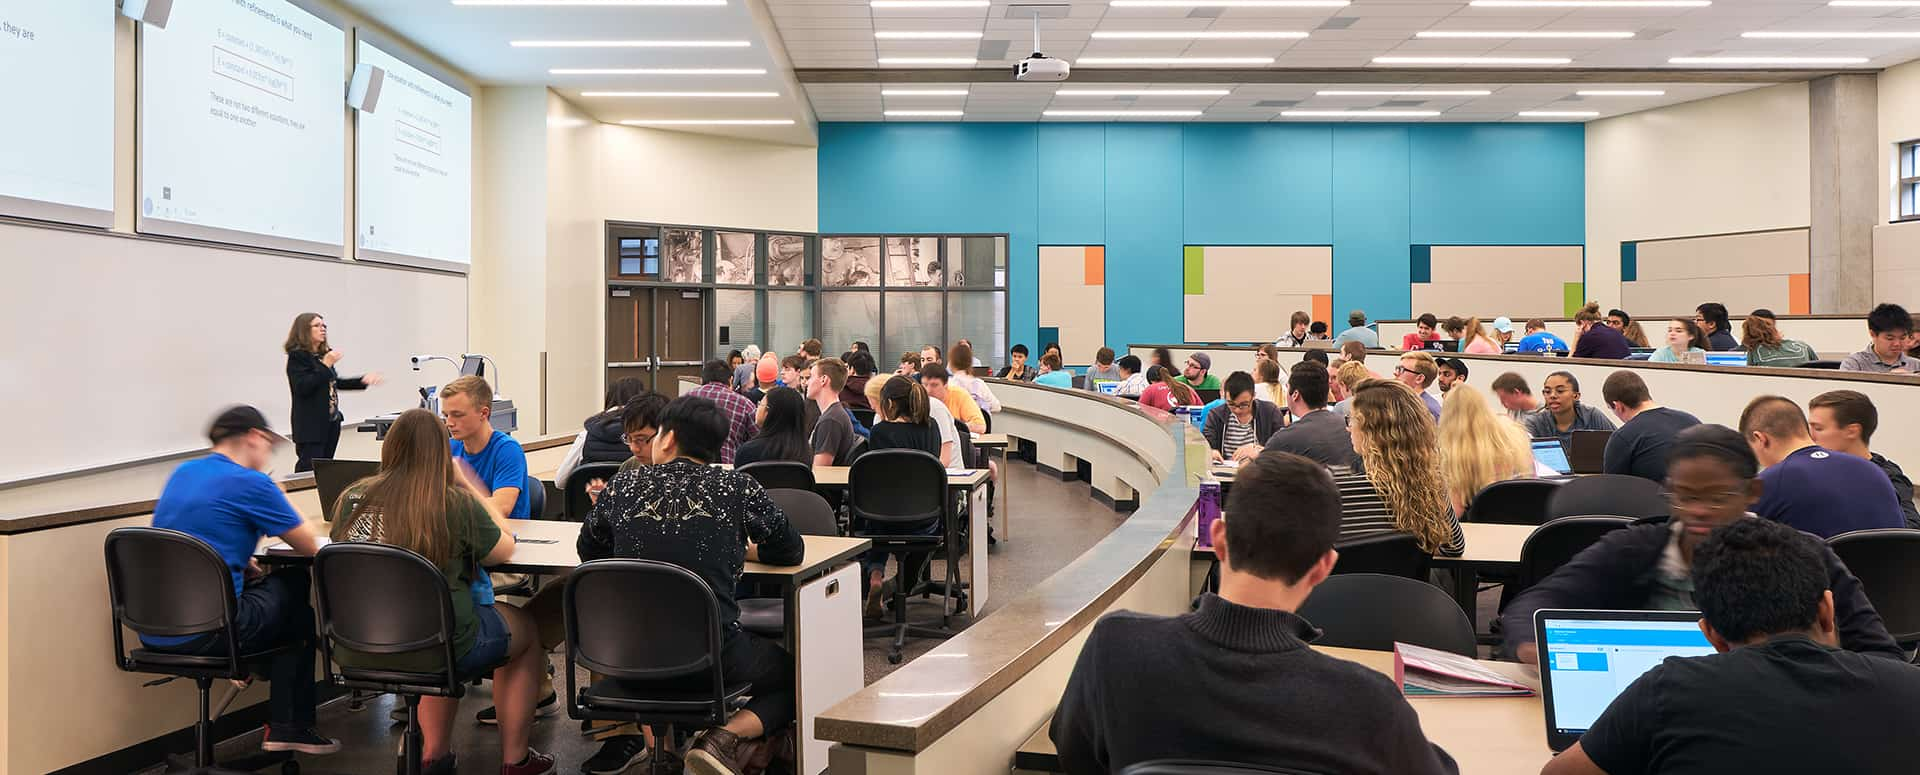 Collaborative Learning Classroom Furniture ~ Bsa lifestructures wilmeth active learning center